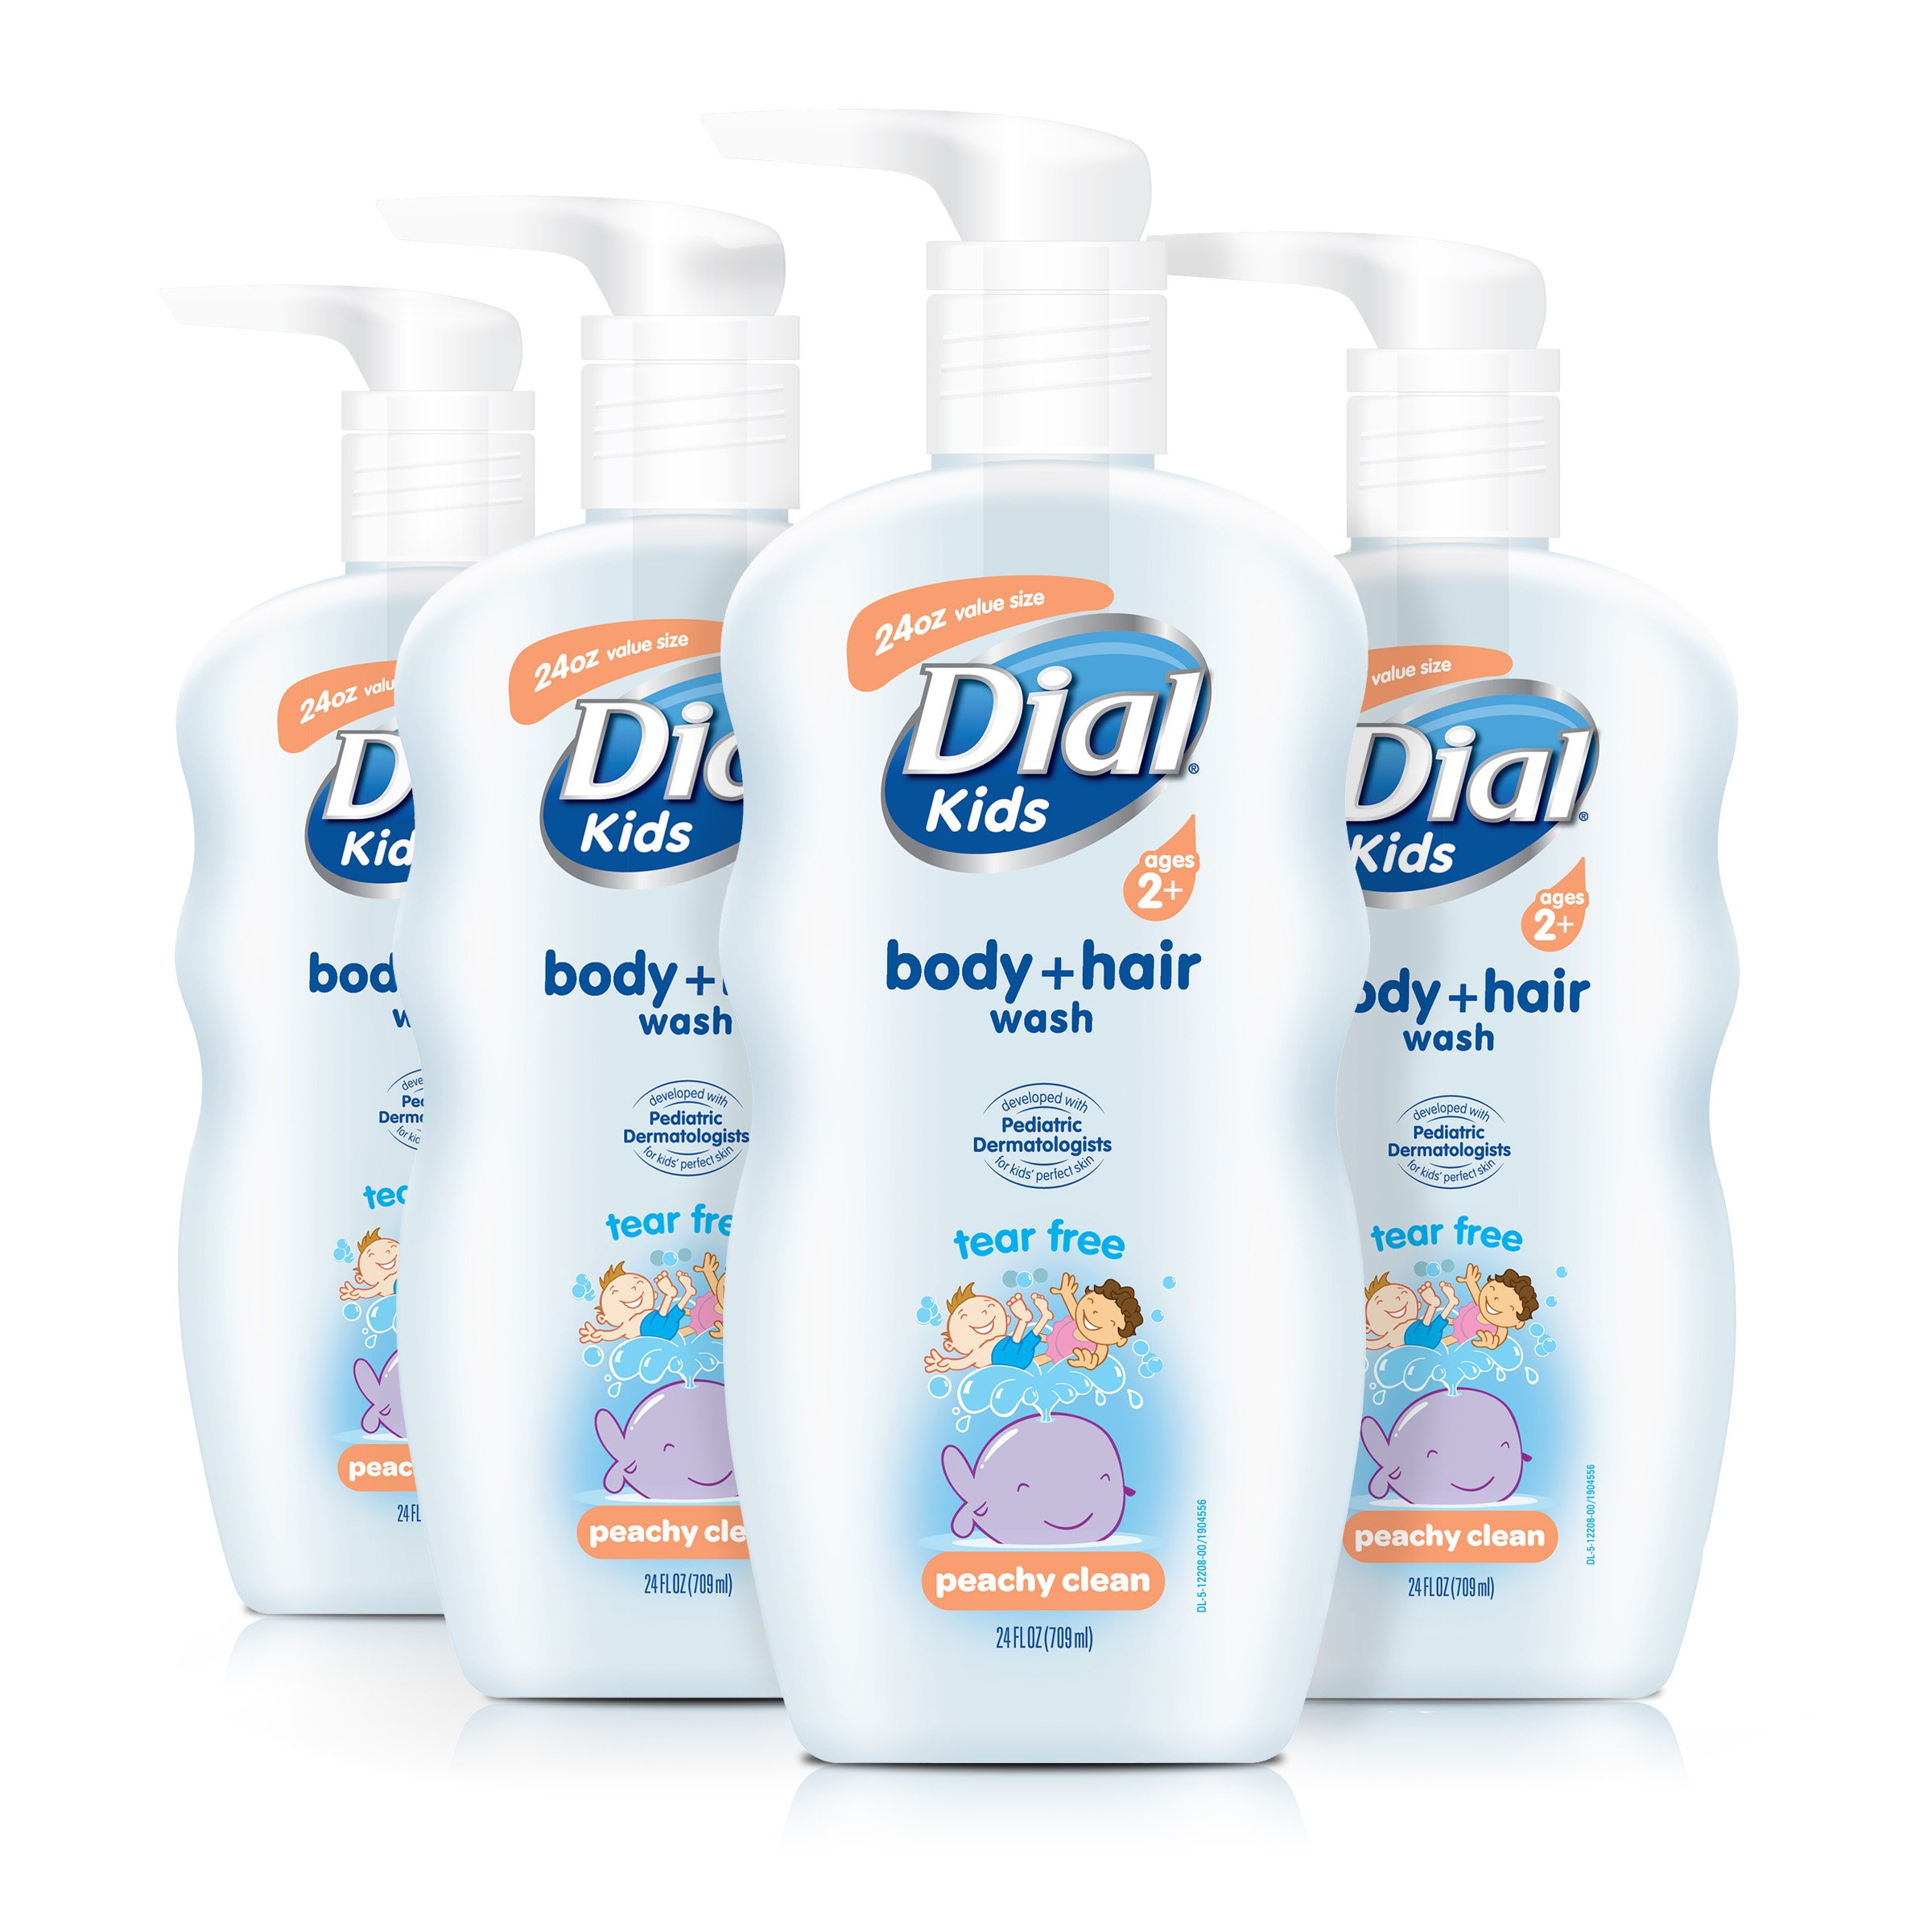 Dial Kids Body + Hair Wash, Peachy Clean, 24 Ounce (Pack of 4) by Dial